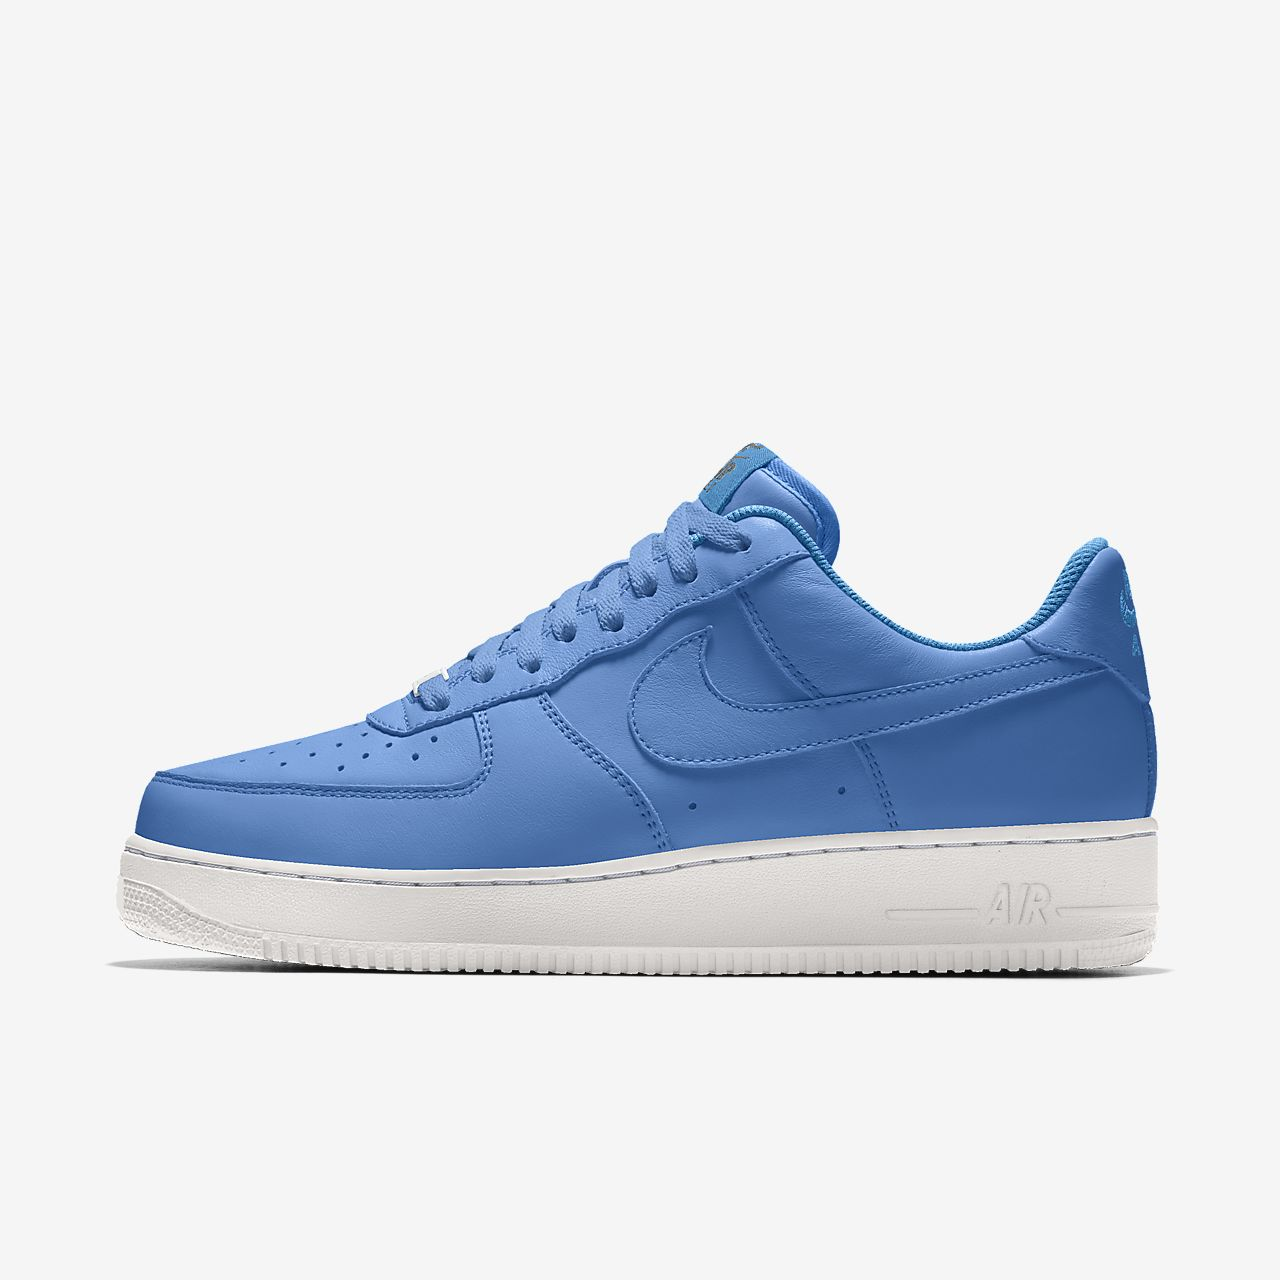 Specialdesignad sko Nike Air Force 1 Low By You för män